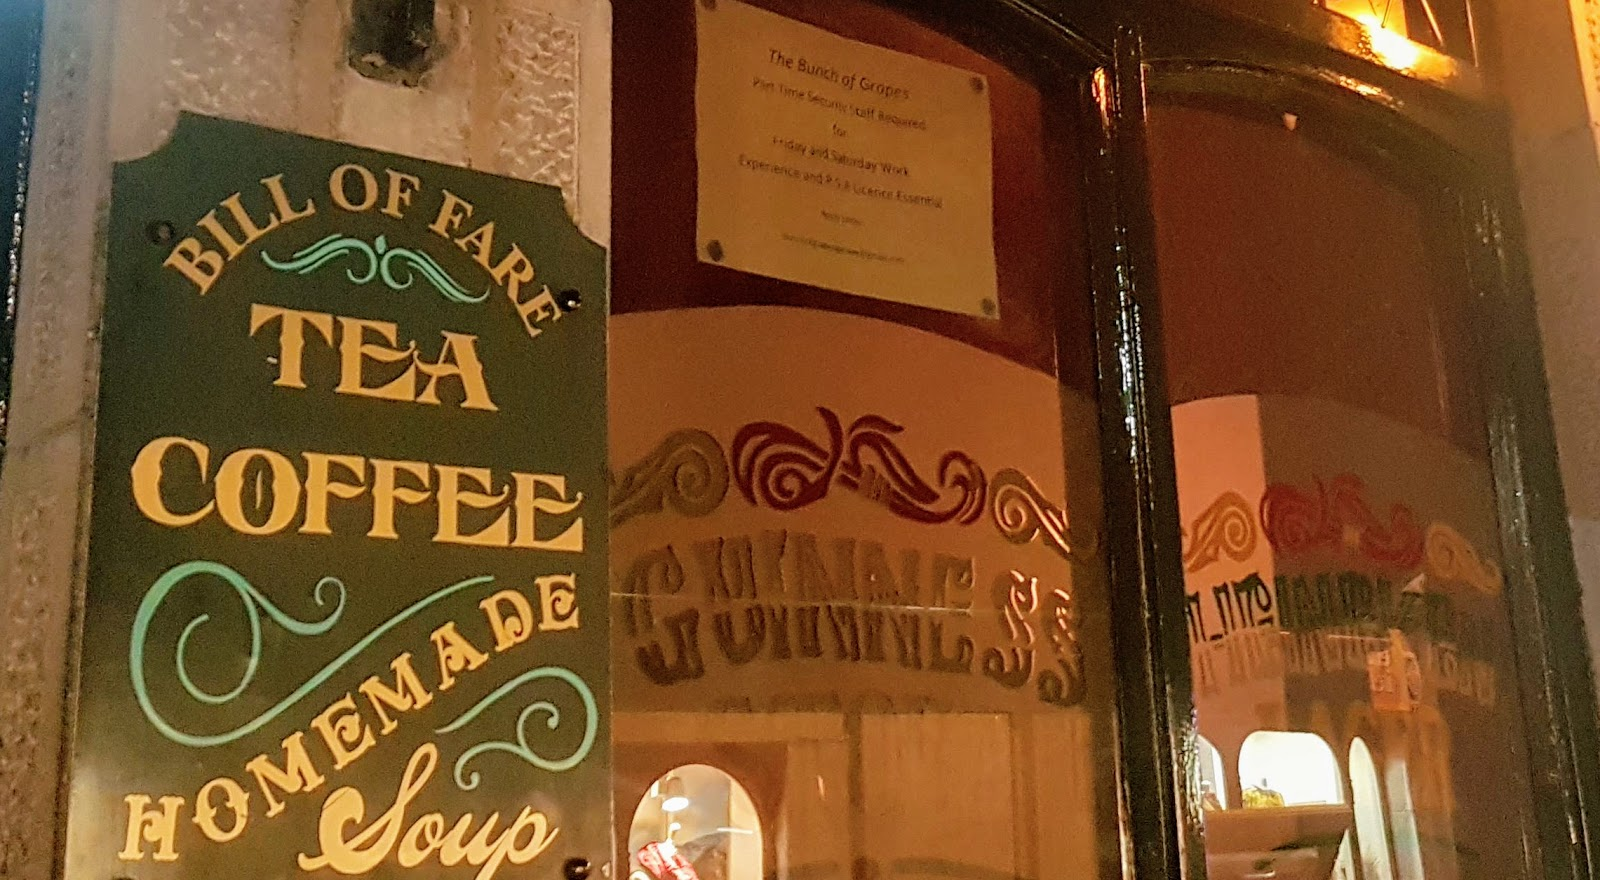 Old fashioned Bill of Fare sign - tea, coffee, homemade soup